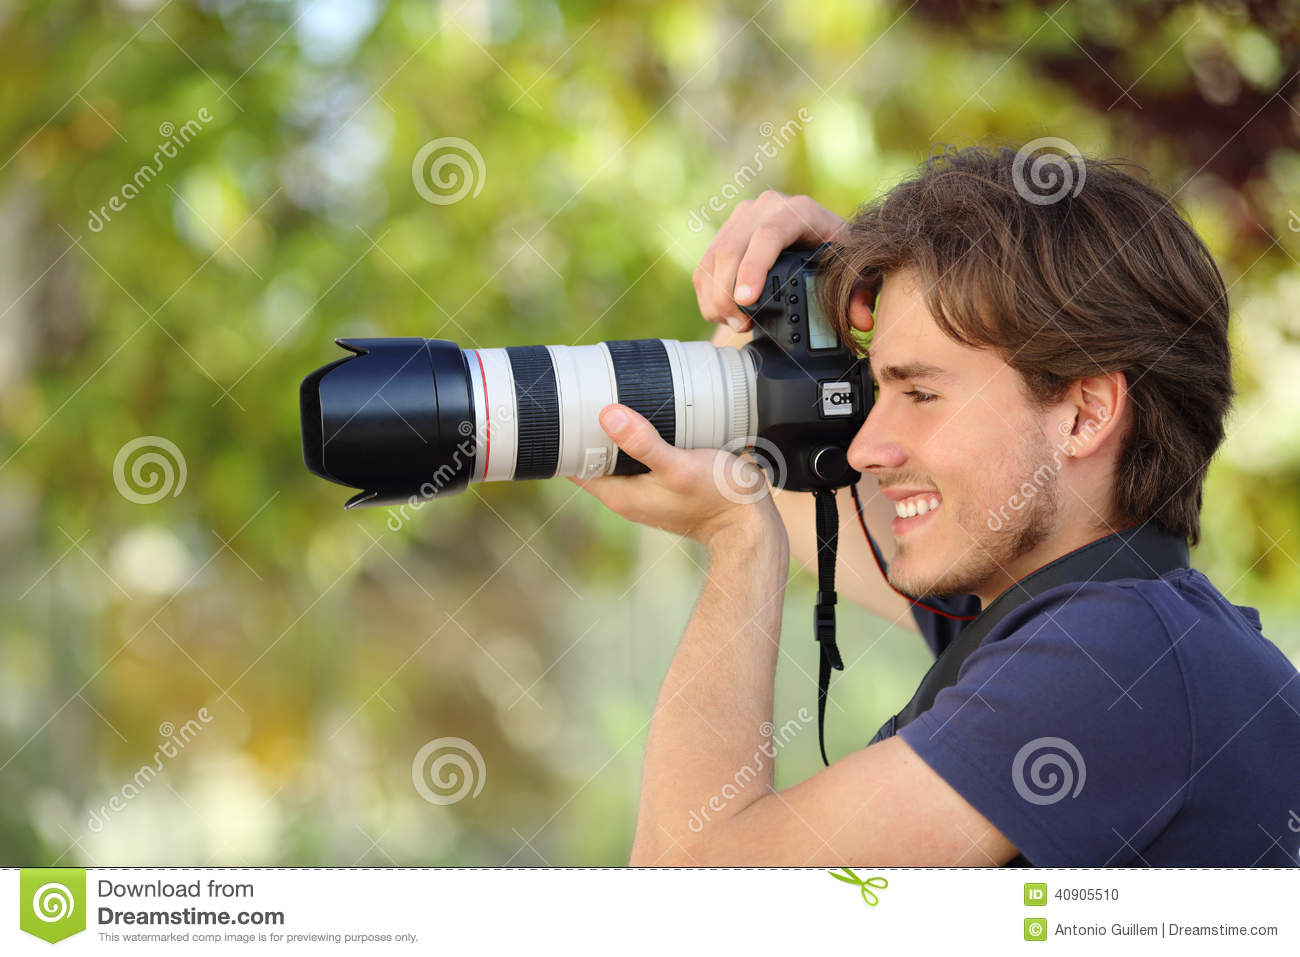 grapher Taking A graph Outdoor With A Dslr Camera Stock